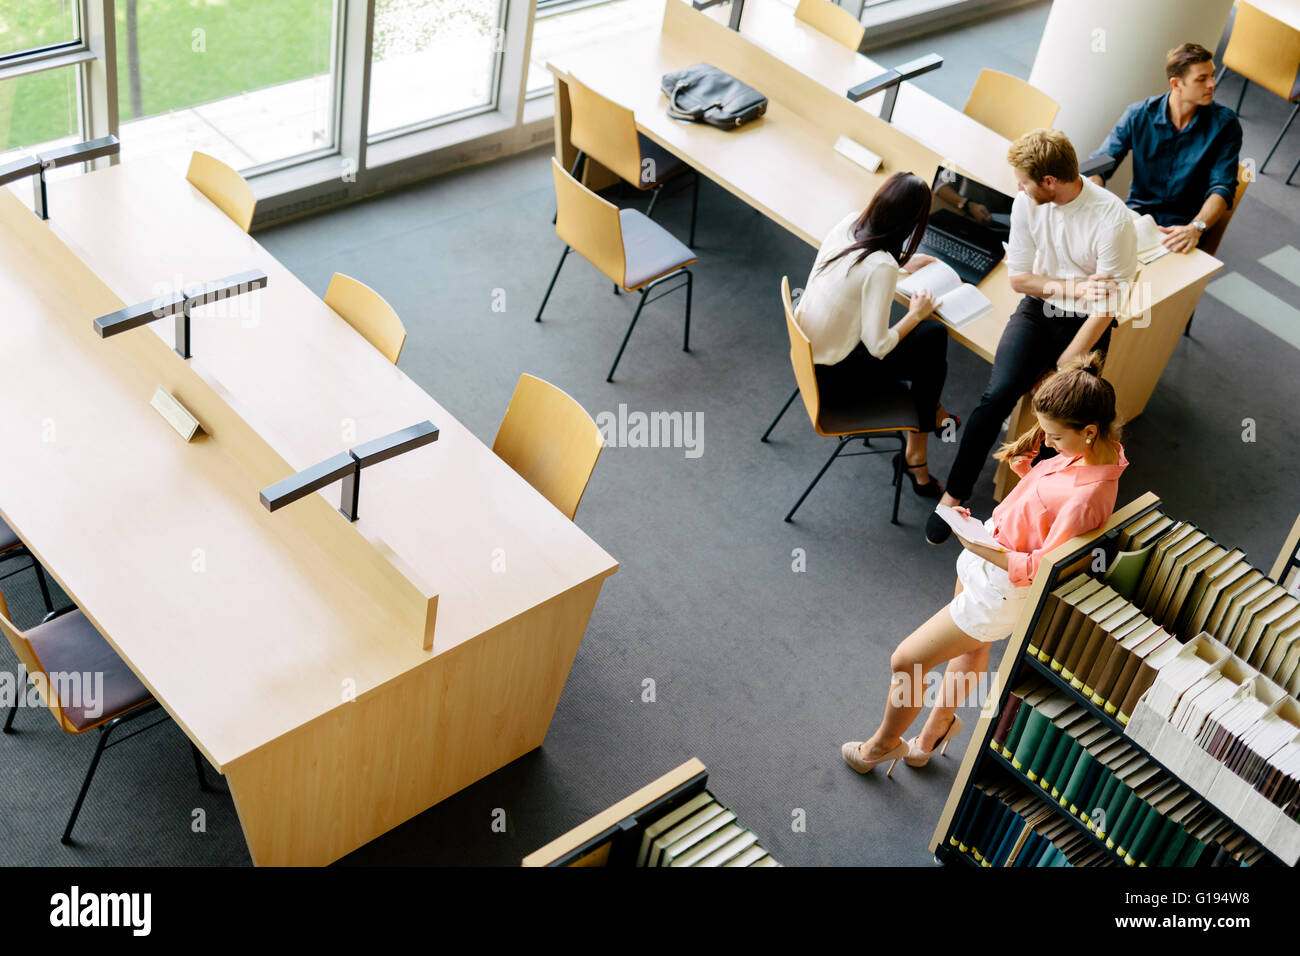 Group of students studying in a library and educating themselves - Stock Image